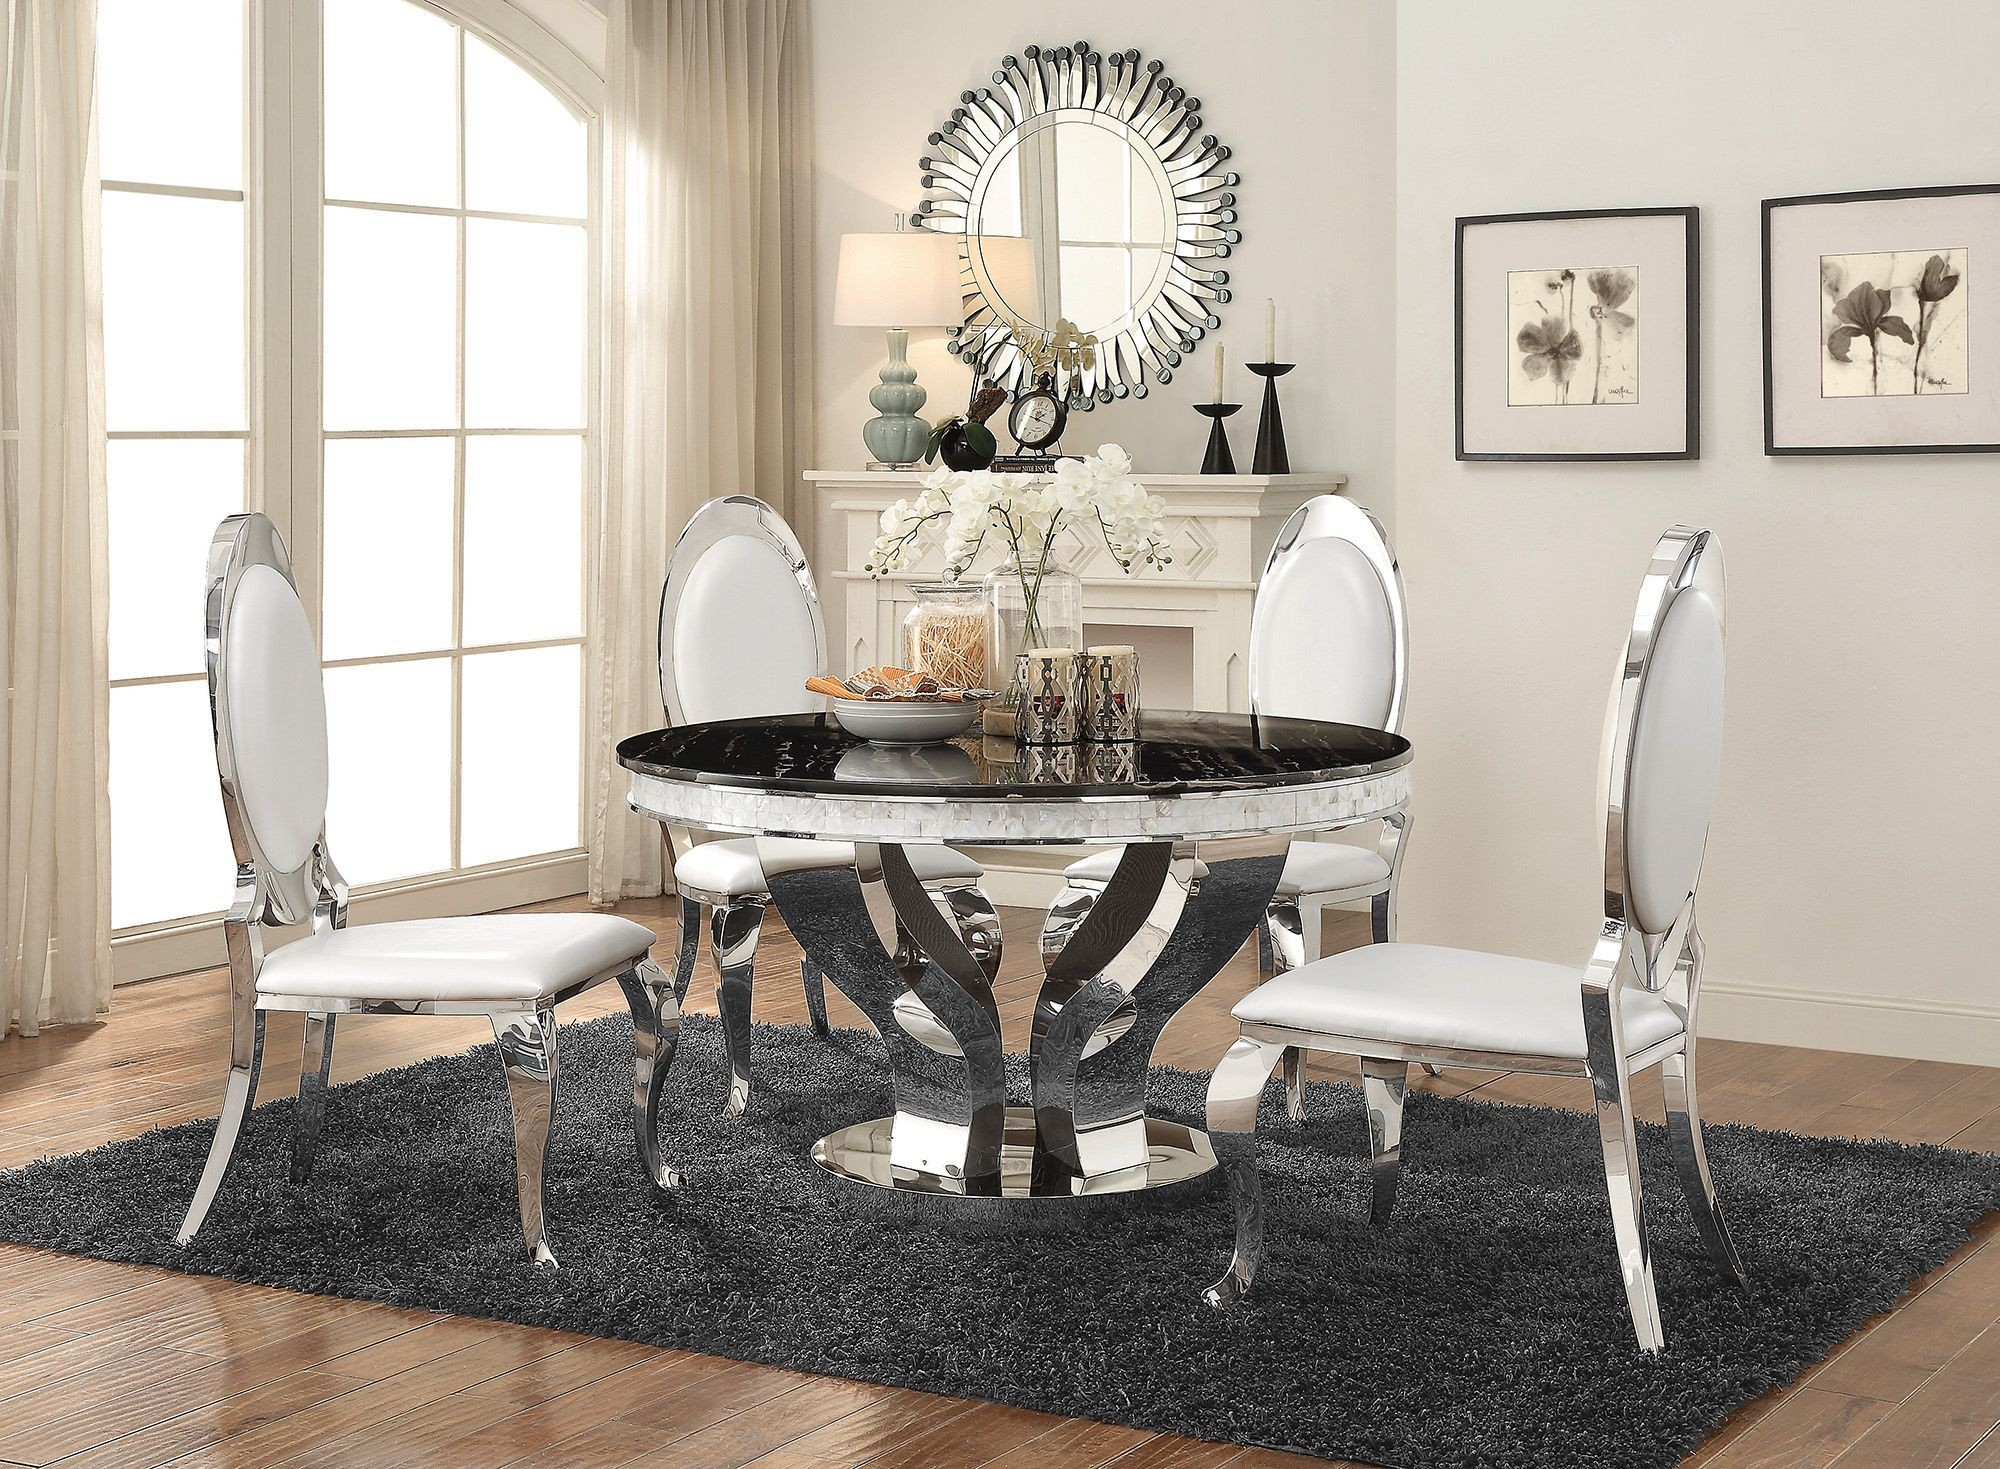 Anchorage Chrome Dining Room Set from